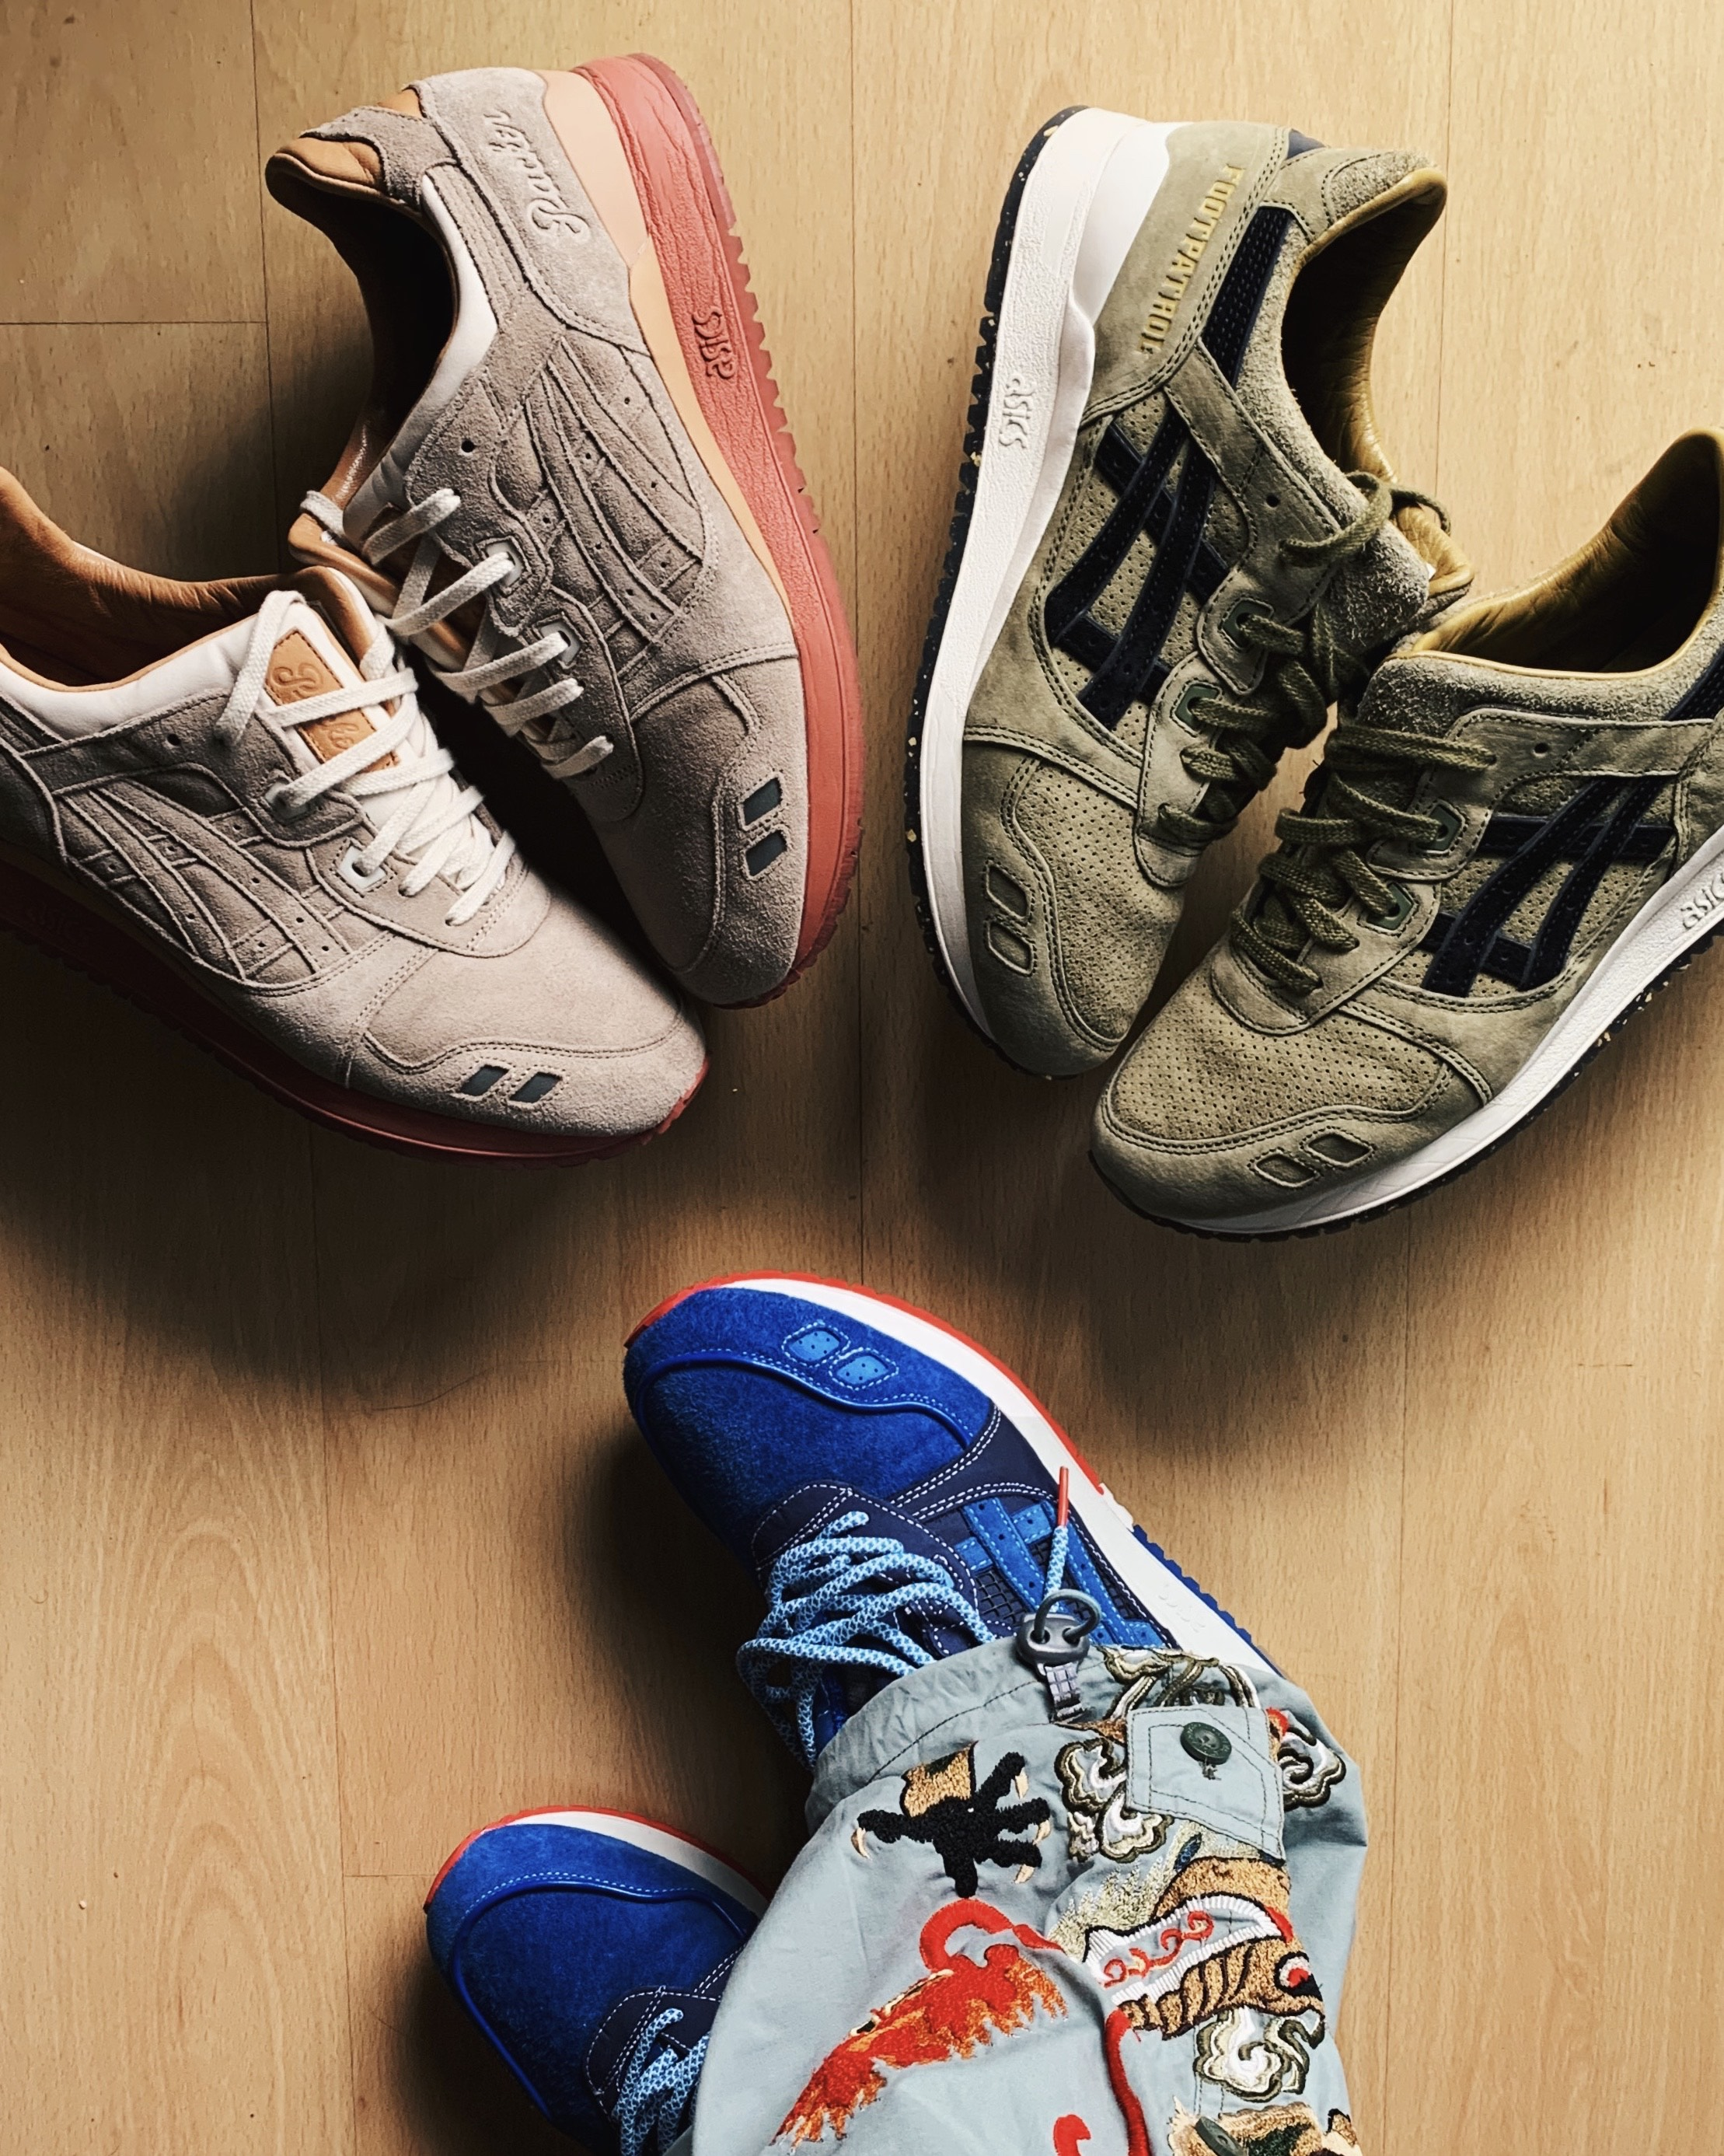 ASICS GEL-Lyte III Collaborations - 2015